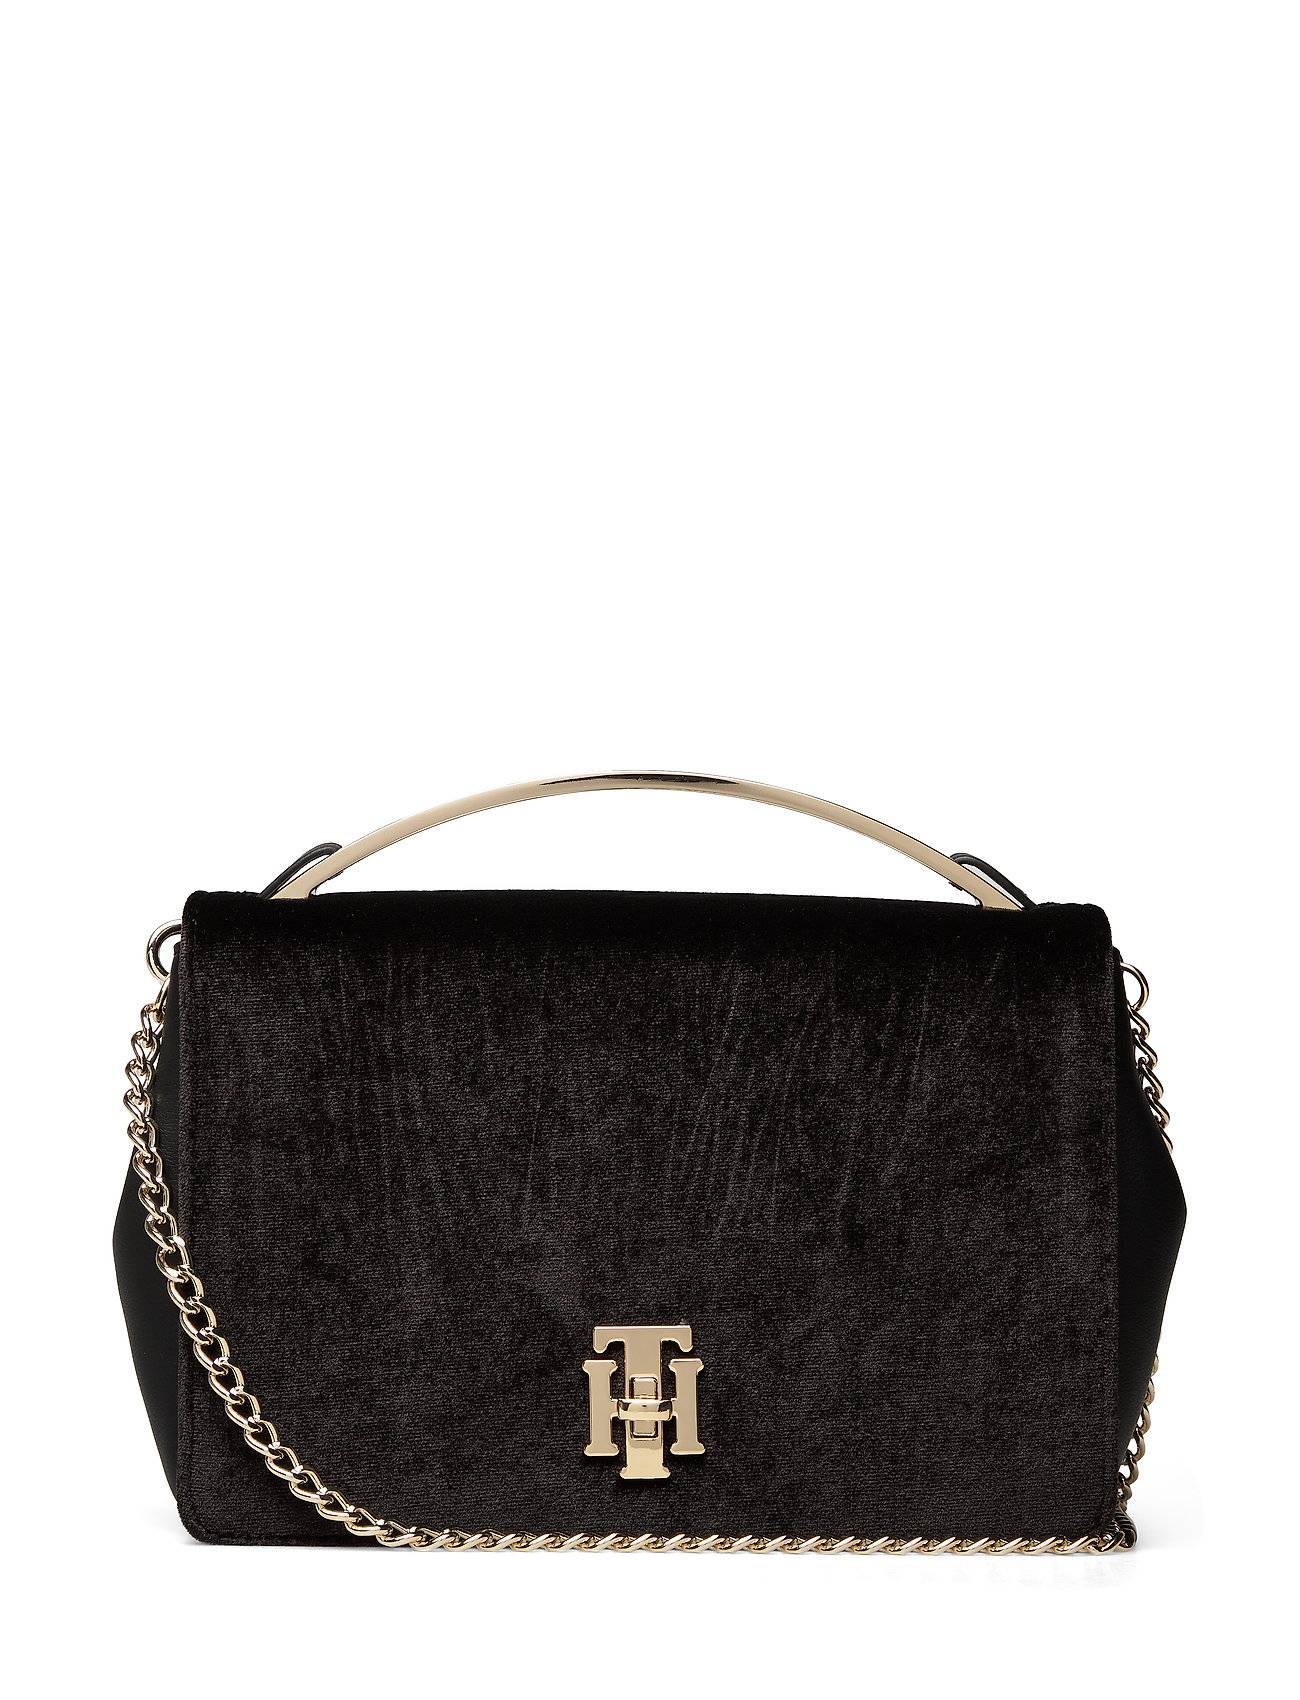 Tommy Hilfiger Th Lock Crossover Vt Bags Small Shoulder Bags - Crossbody Bags Musta